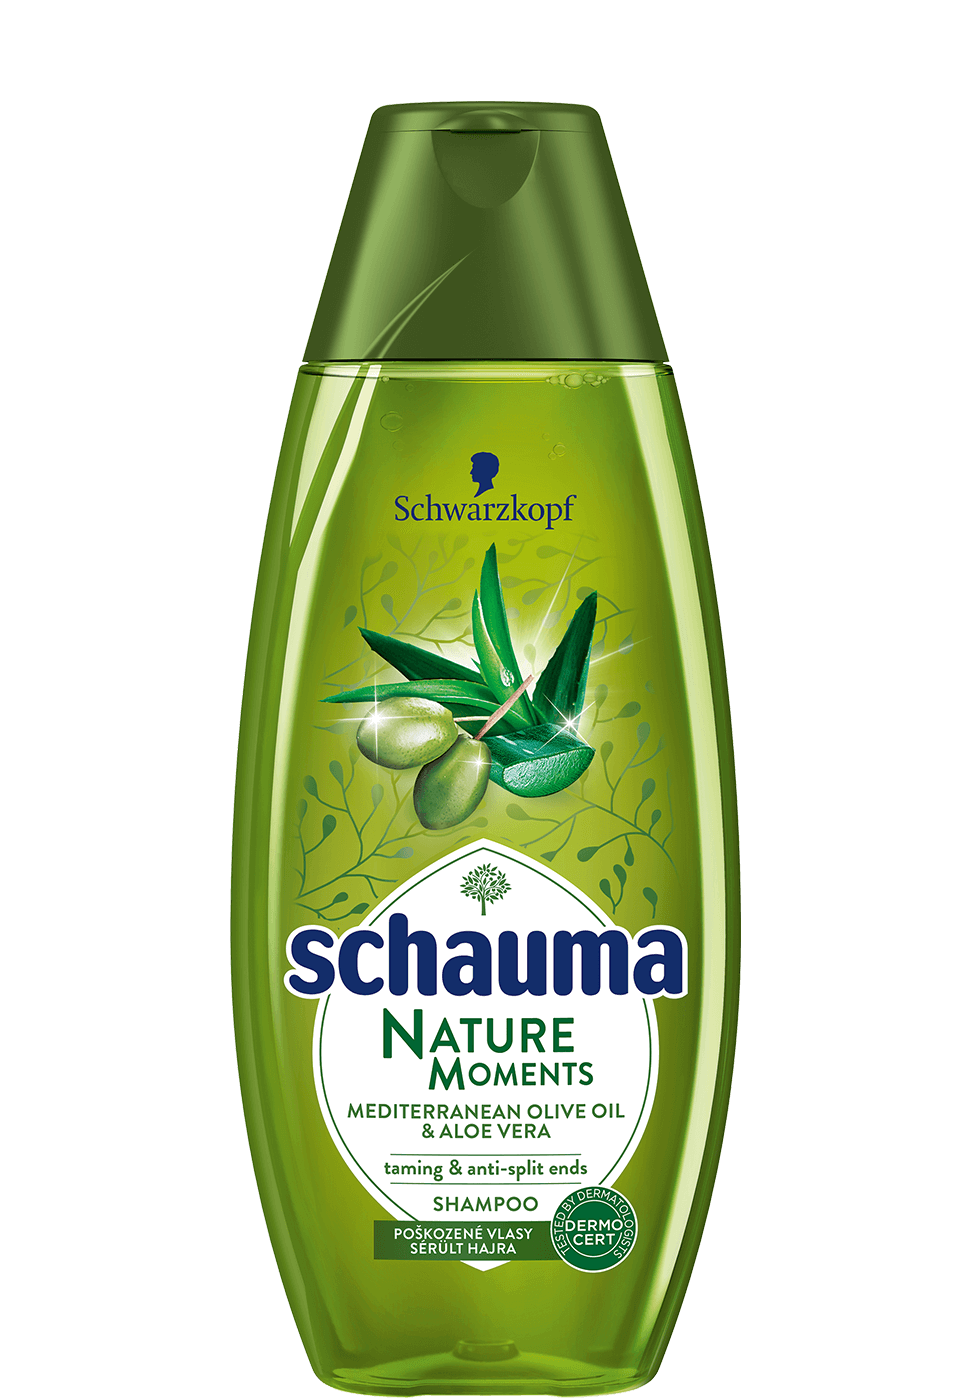 schauma_com_nature_moments_mediterranean_olive_oil_shampoo_970x1400